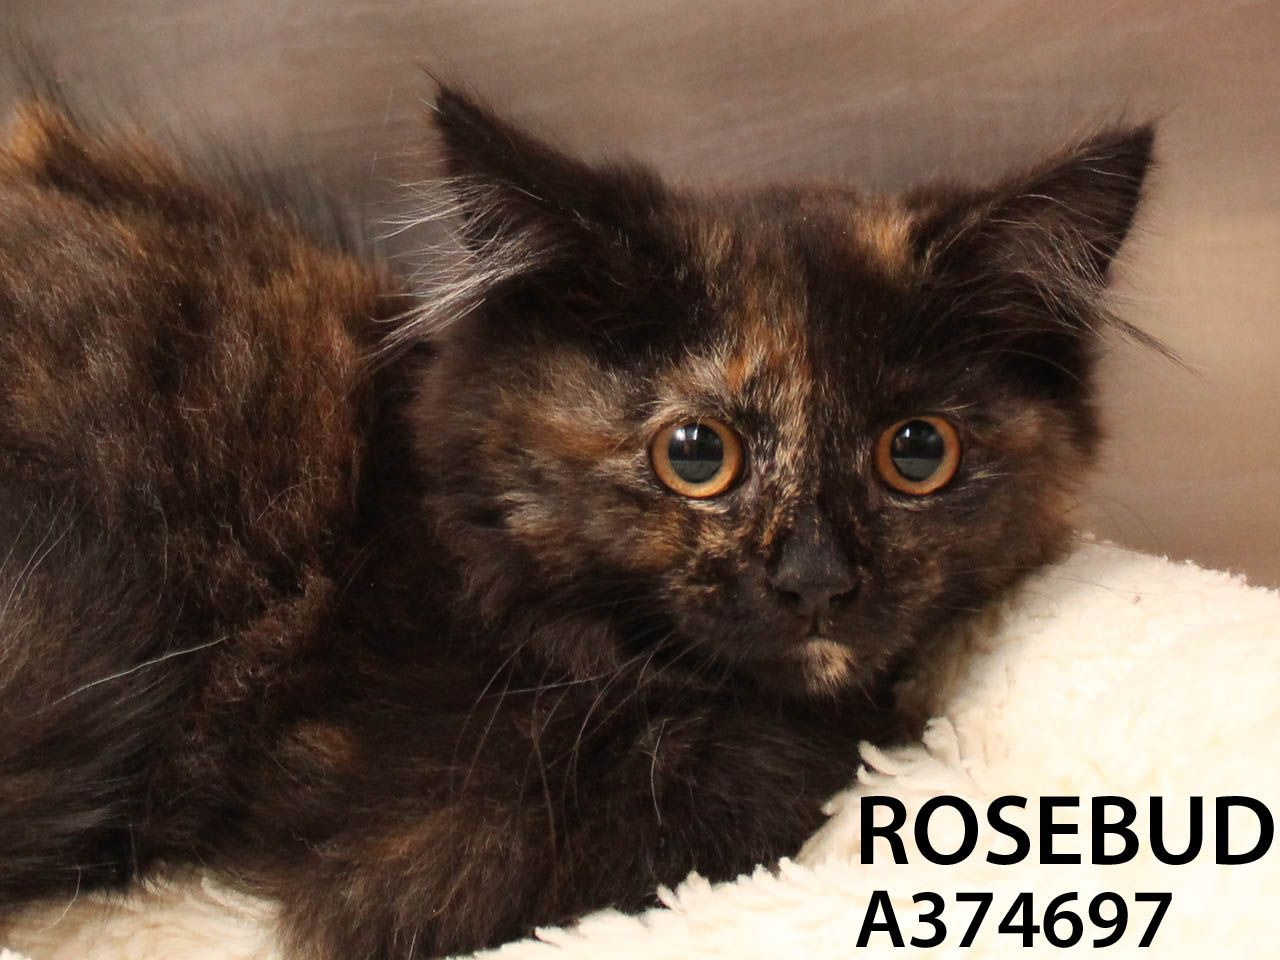 Rosebud is a delicate and beautiful little flower. This kitten came in as a stray and is still adjusting. She can be hissy and shrinks from touch at first -- but spend some time with her and you will find she warms up and she will surely blossom in a loving and steady home. Come meet this shy sweet beauty today!